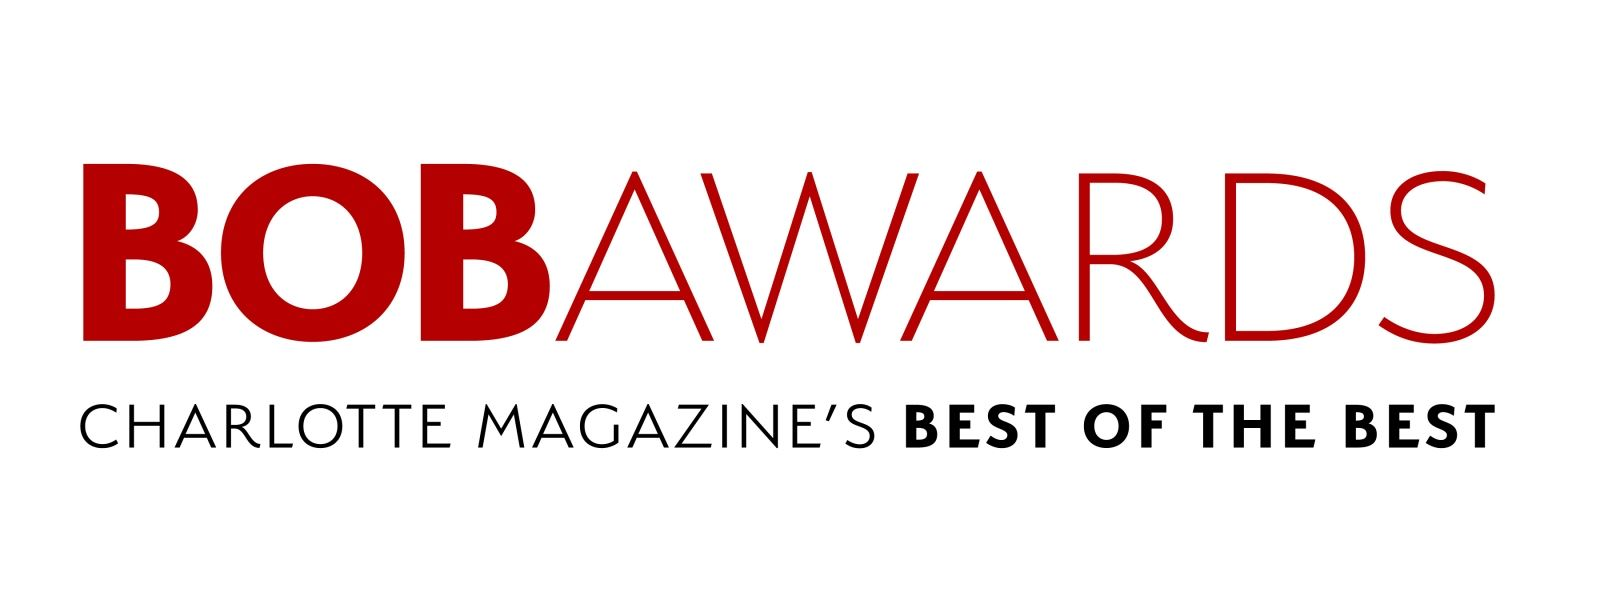 Charlotte Magazine's Best of the Best Awards